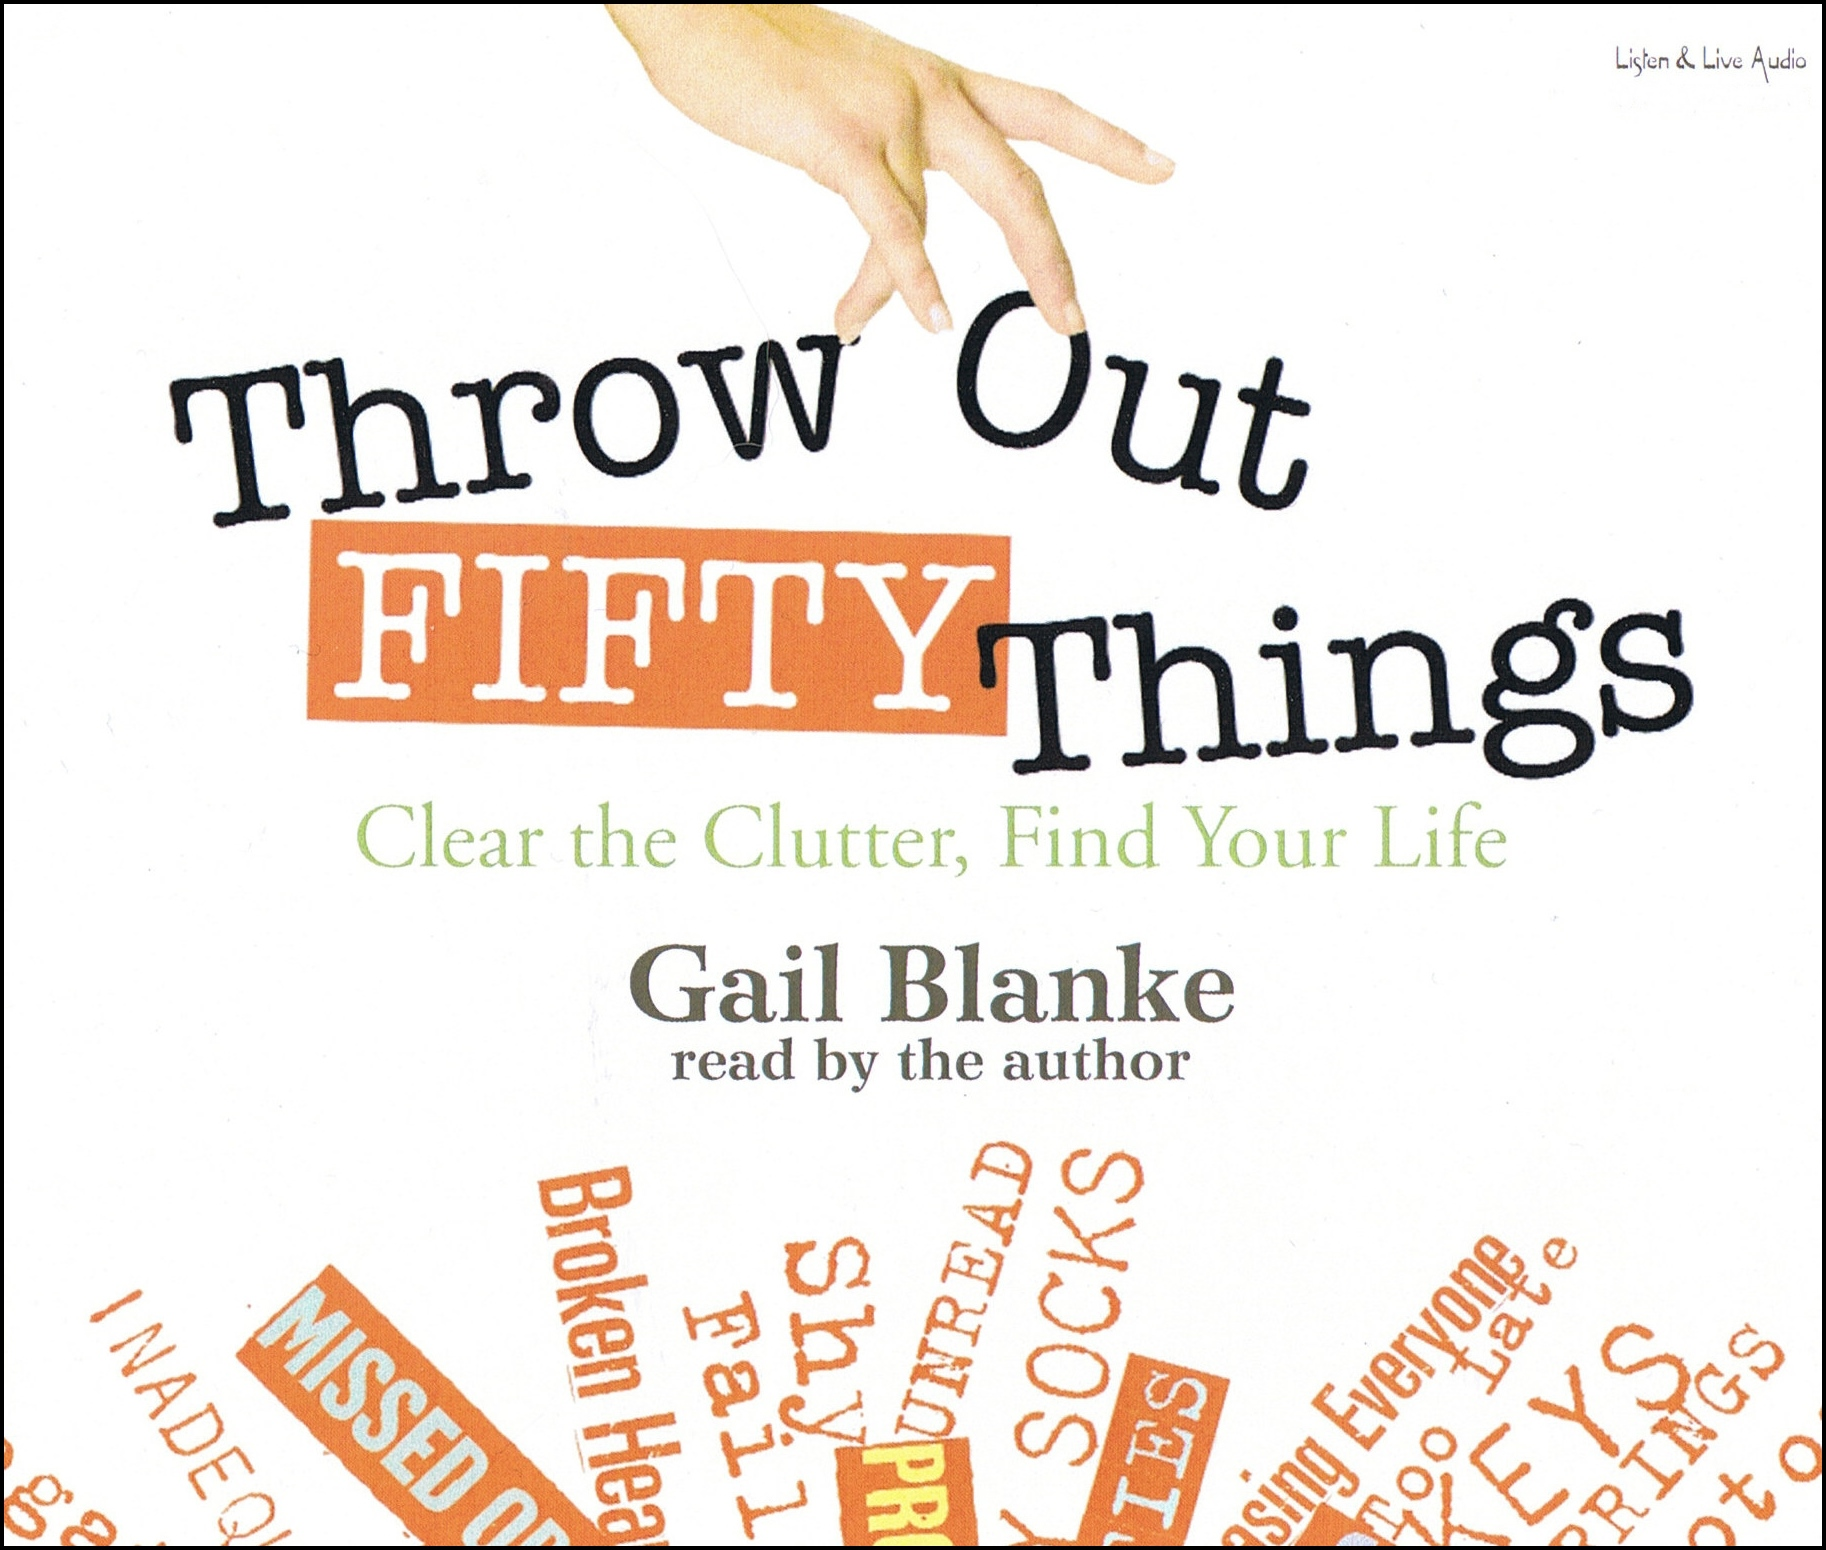 Throw Out Fifty Things [3CD]